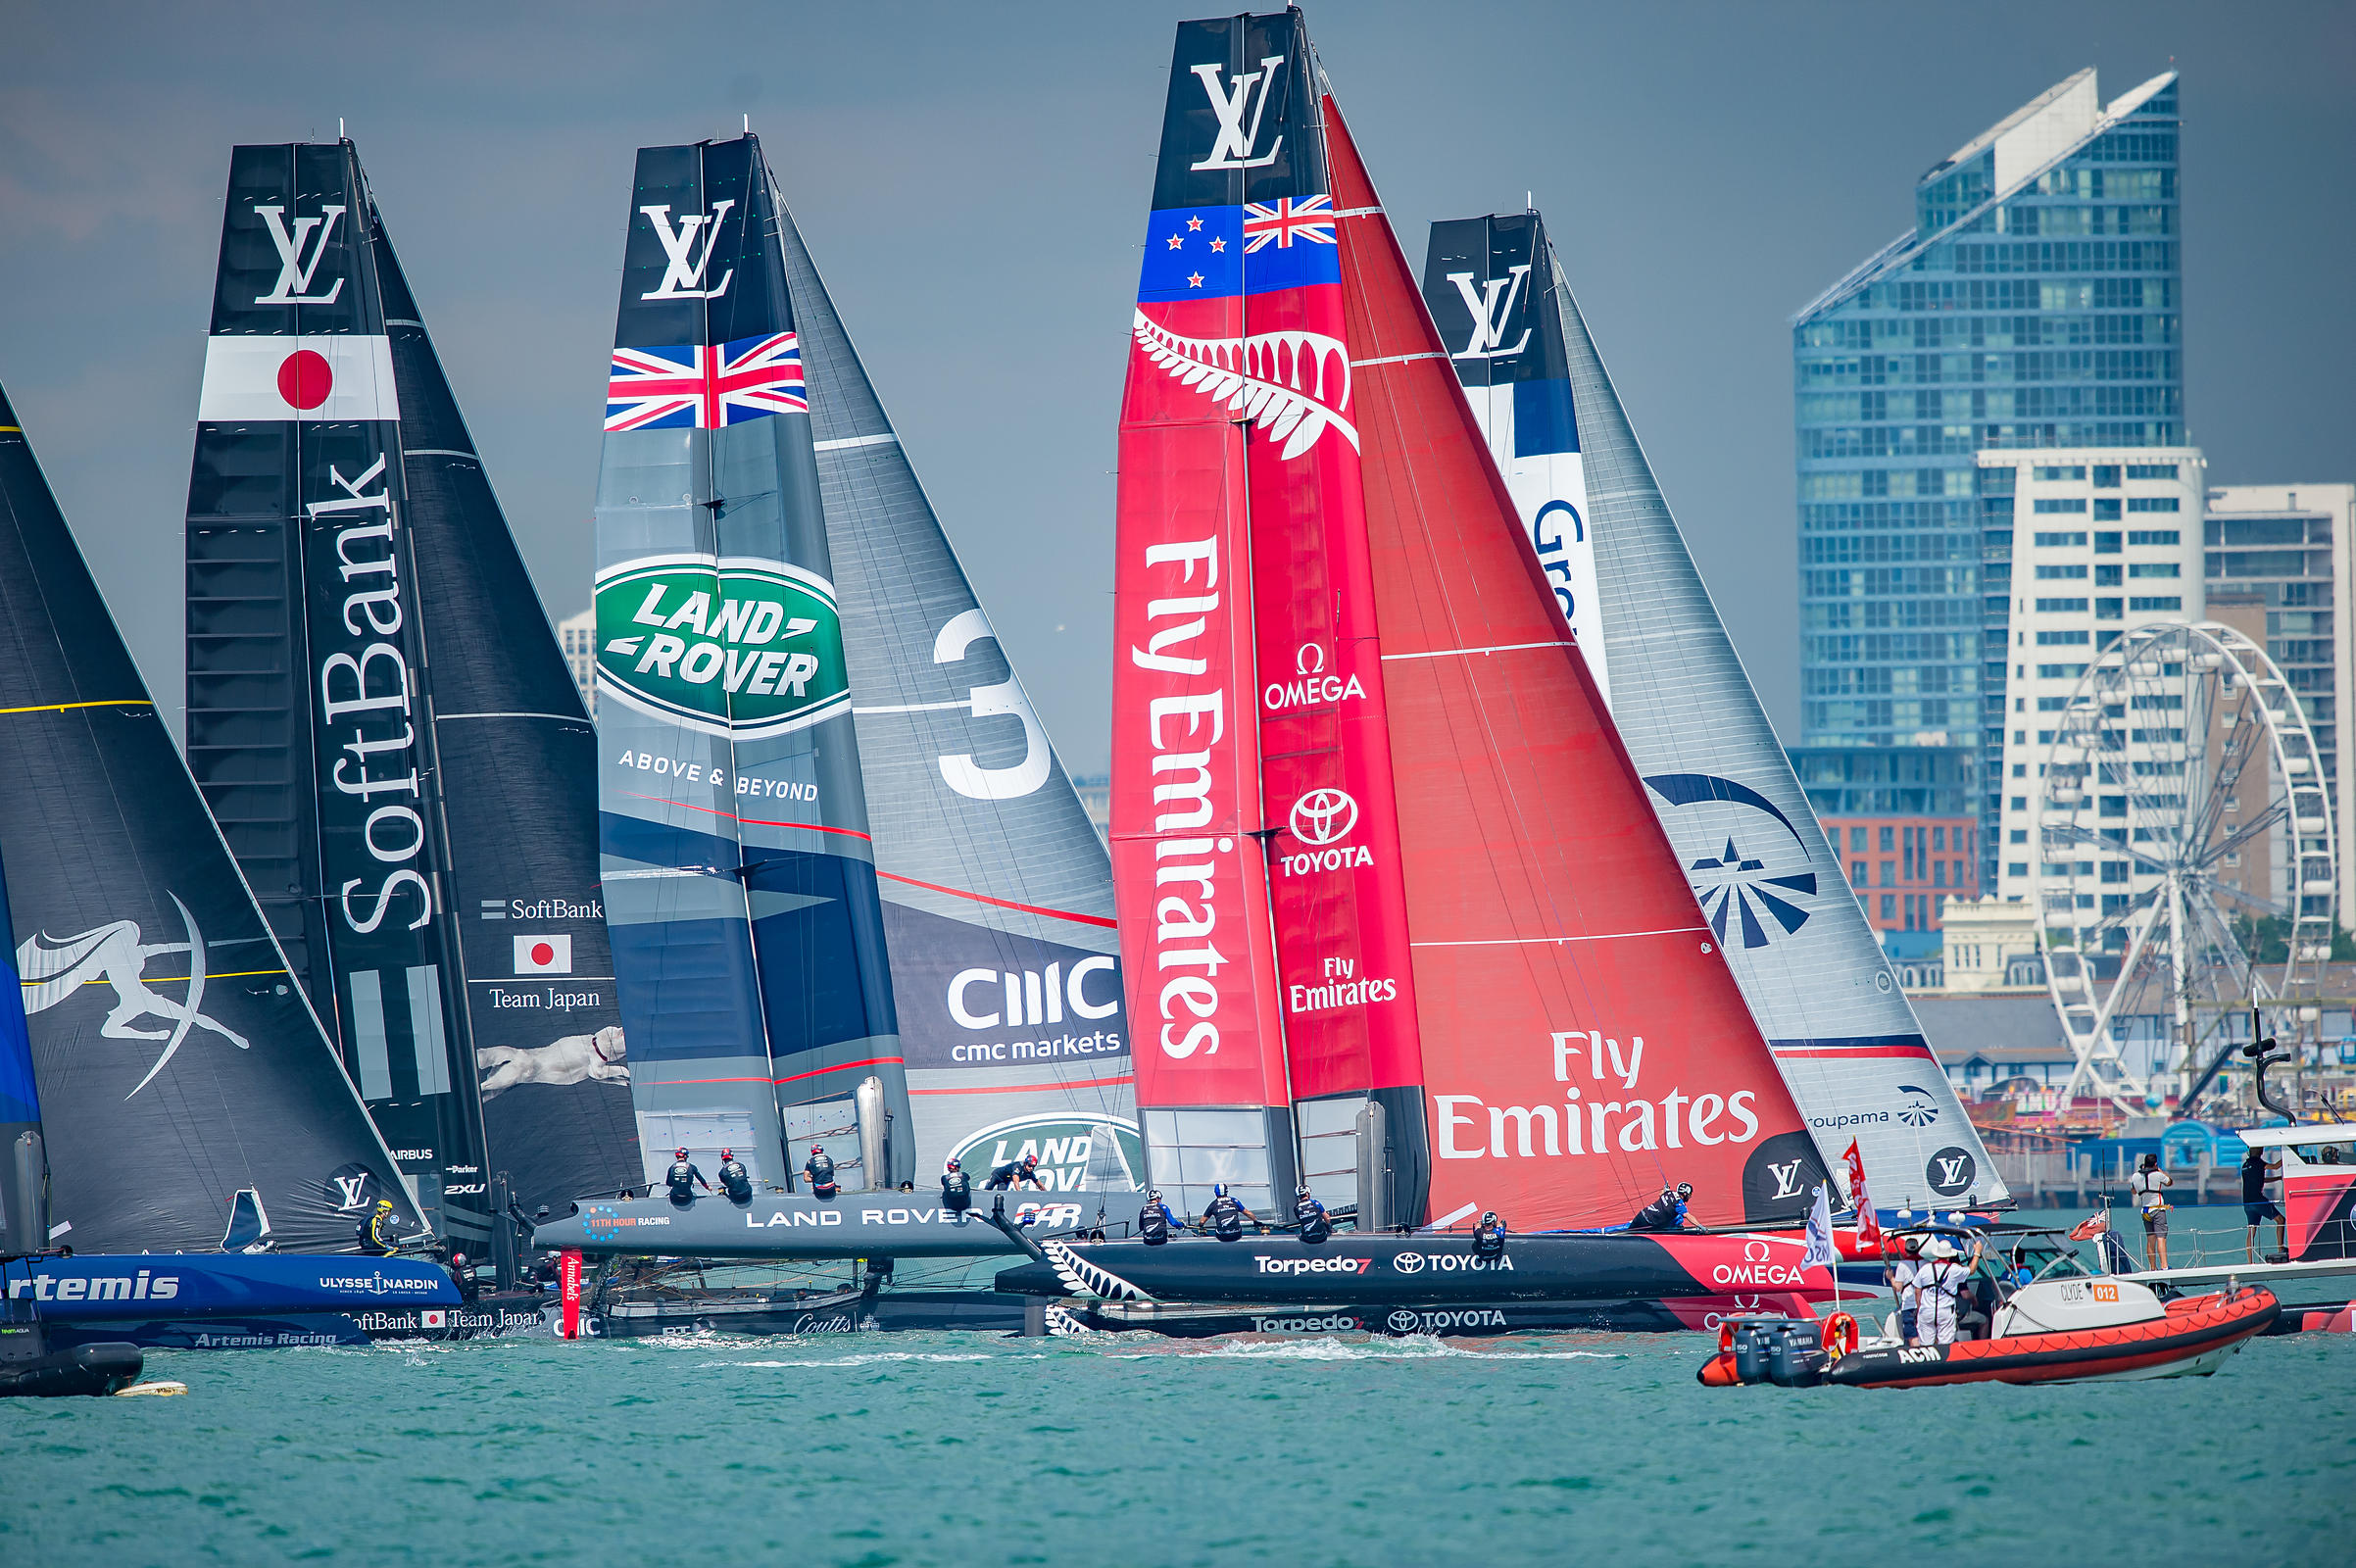 America's Cup 2016 Yachts in the Solent at the Start of the Race